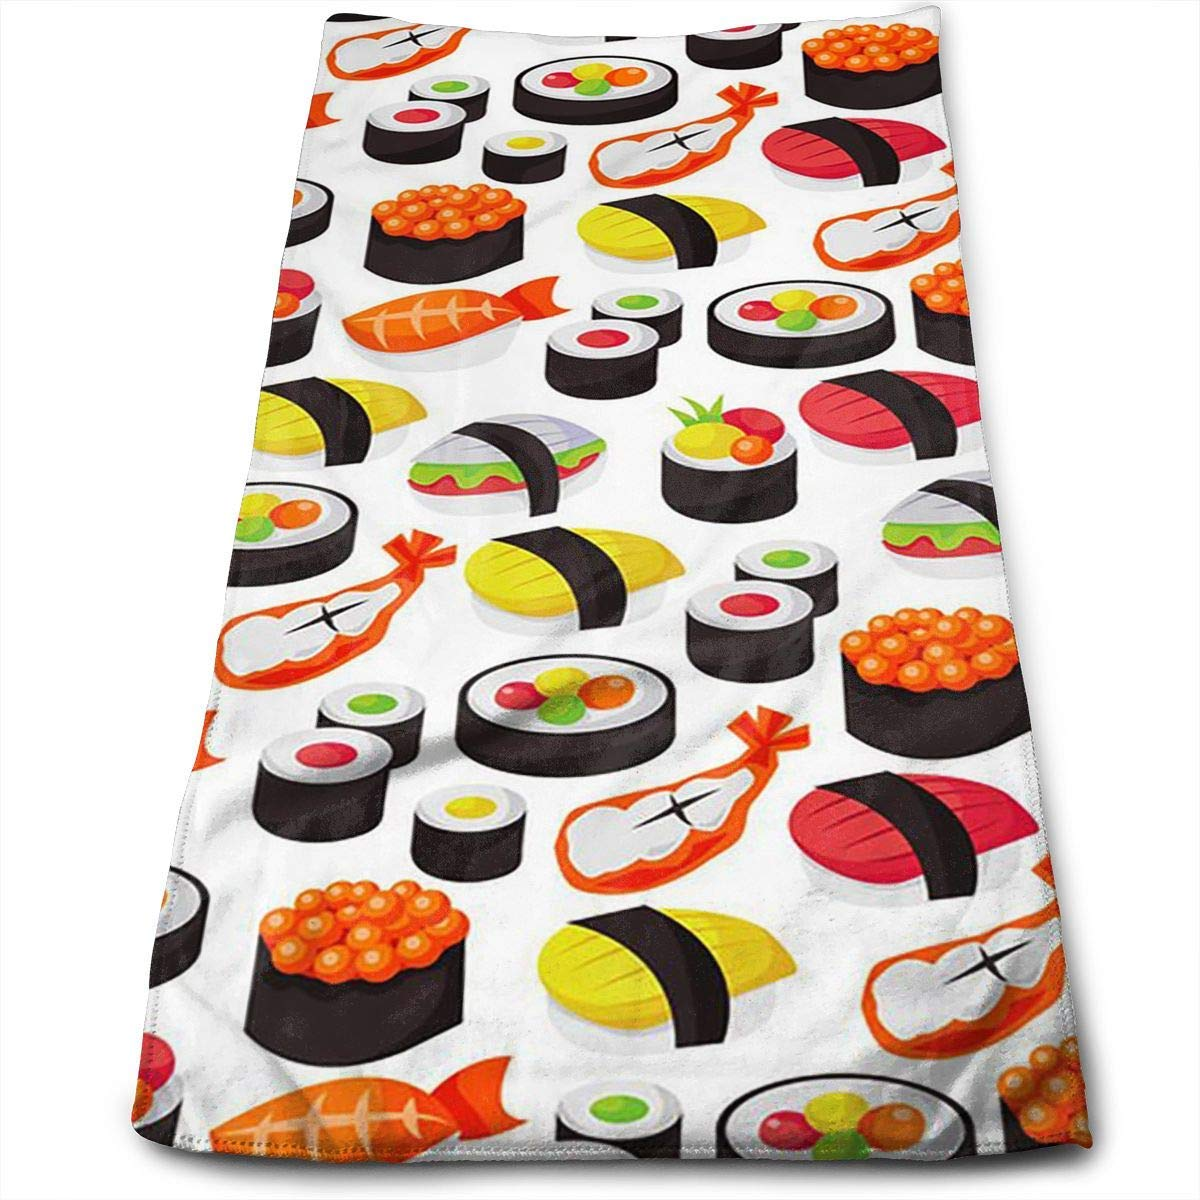 WCMBY Hand Towels Japanese Sushi Face Towels Highly Absorbent Towels for Face Gym and SPA 12' X 27.5'